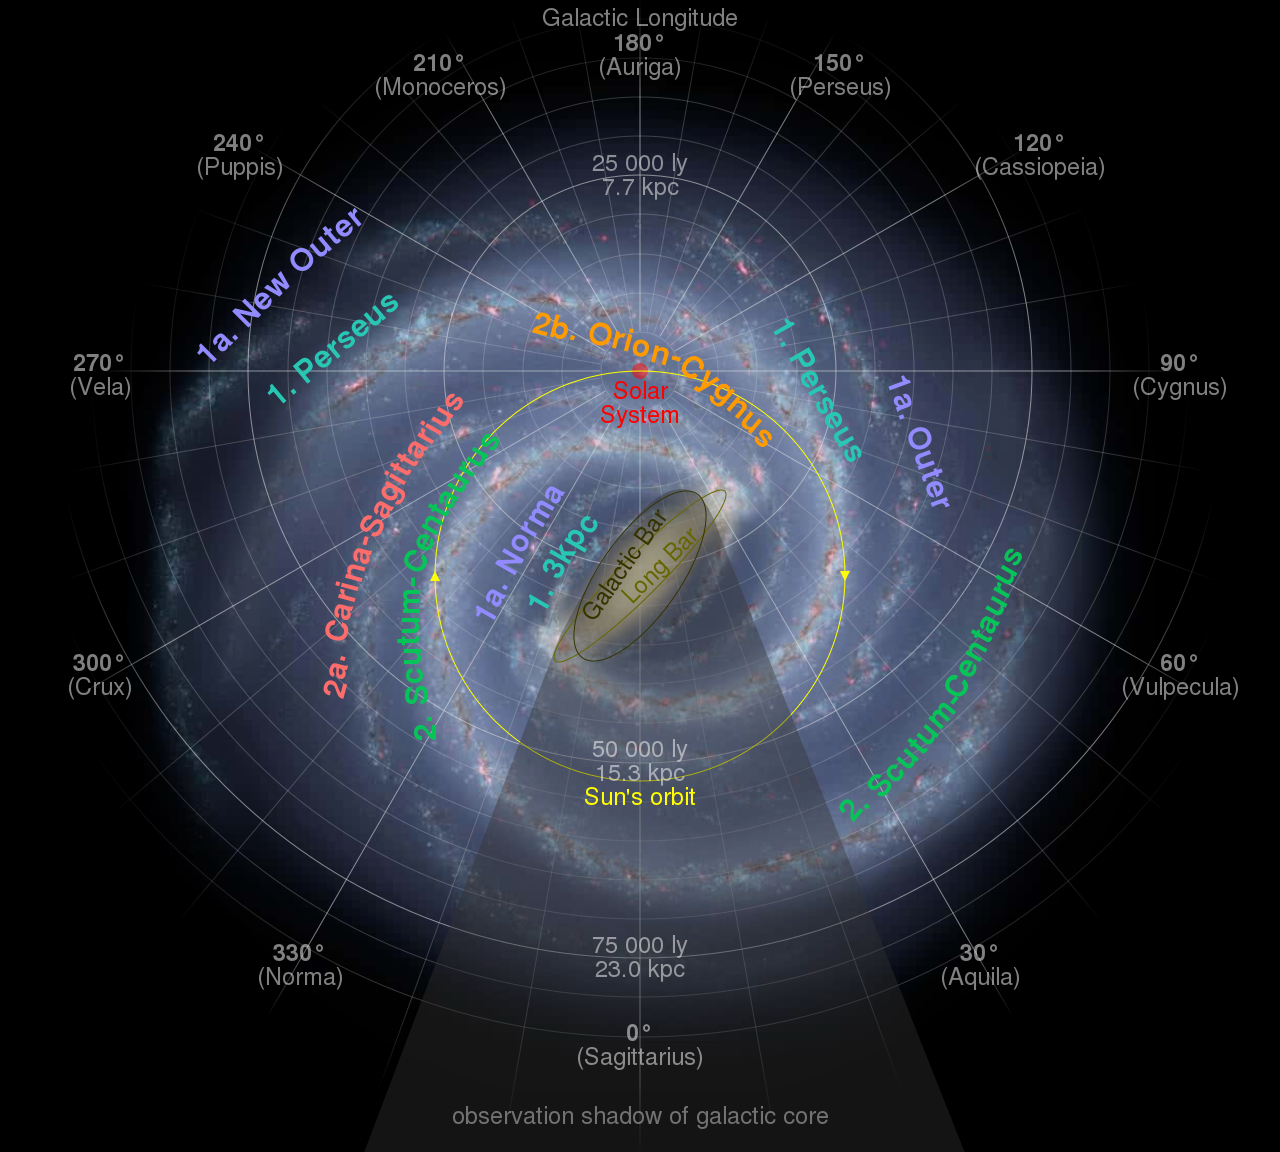 Diagram Of The Milky Way With The Position Of The Solar System Marked By A Yellow Arrow In 2020 Milky Way Galaxy Galaxy Solar System Milky Way Solar System